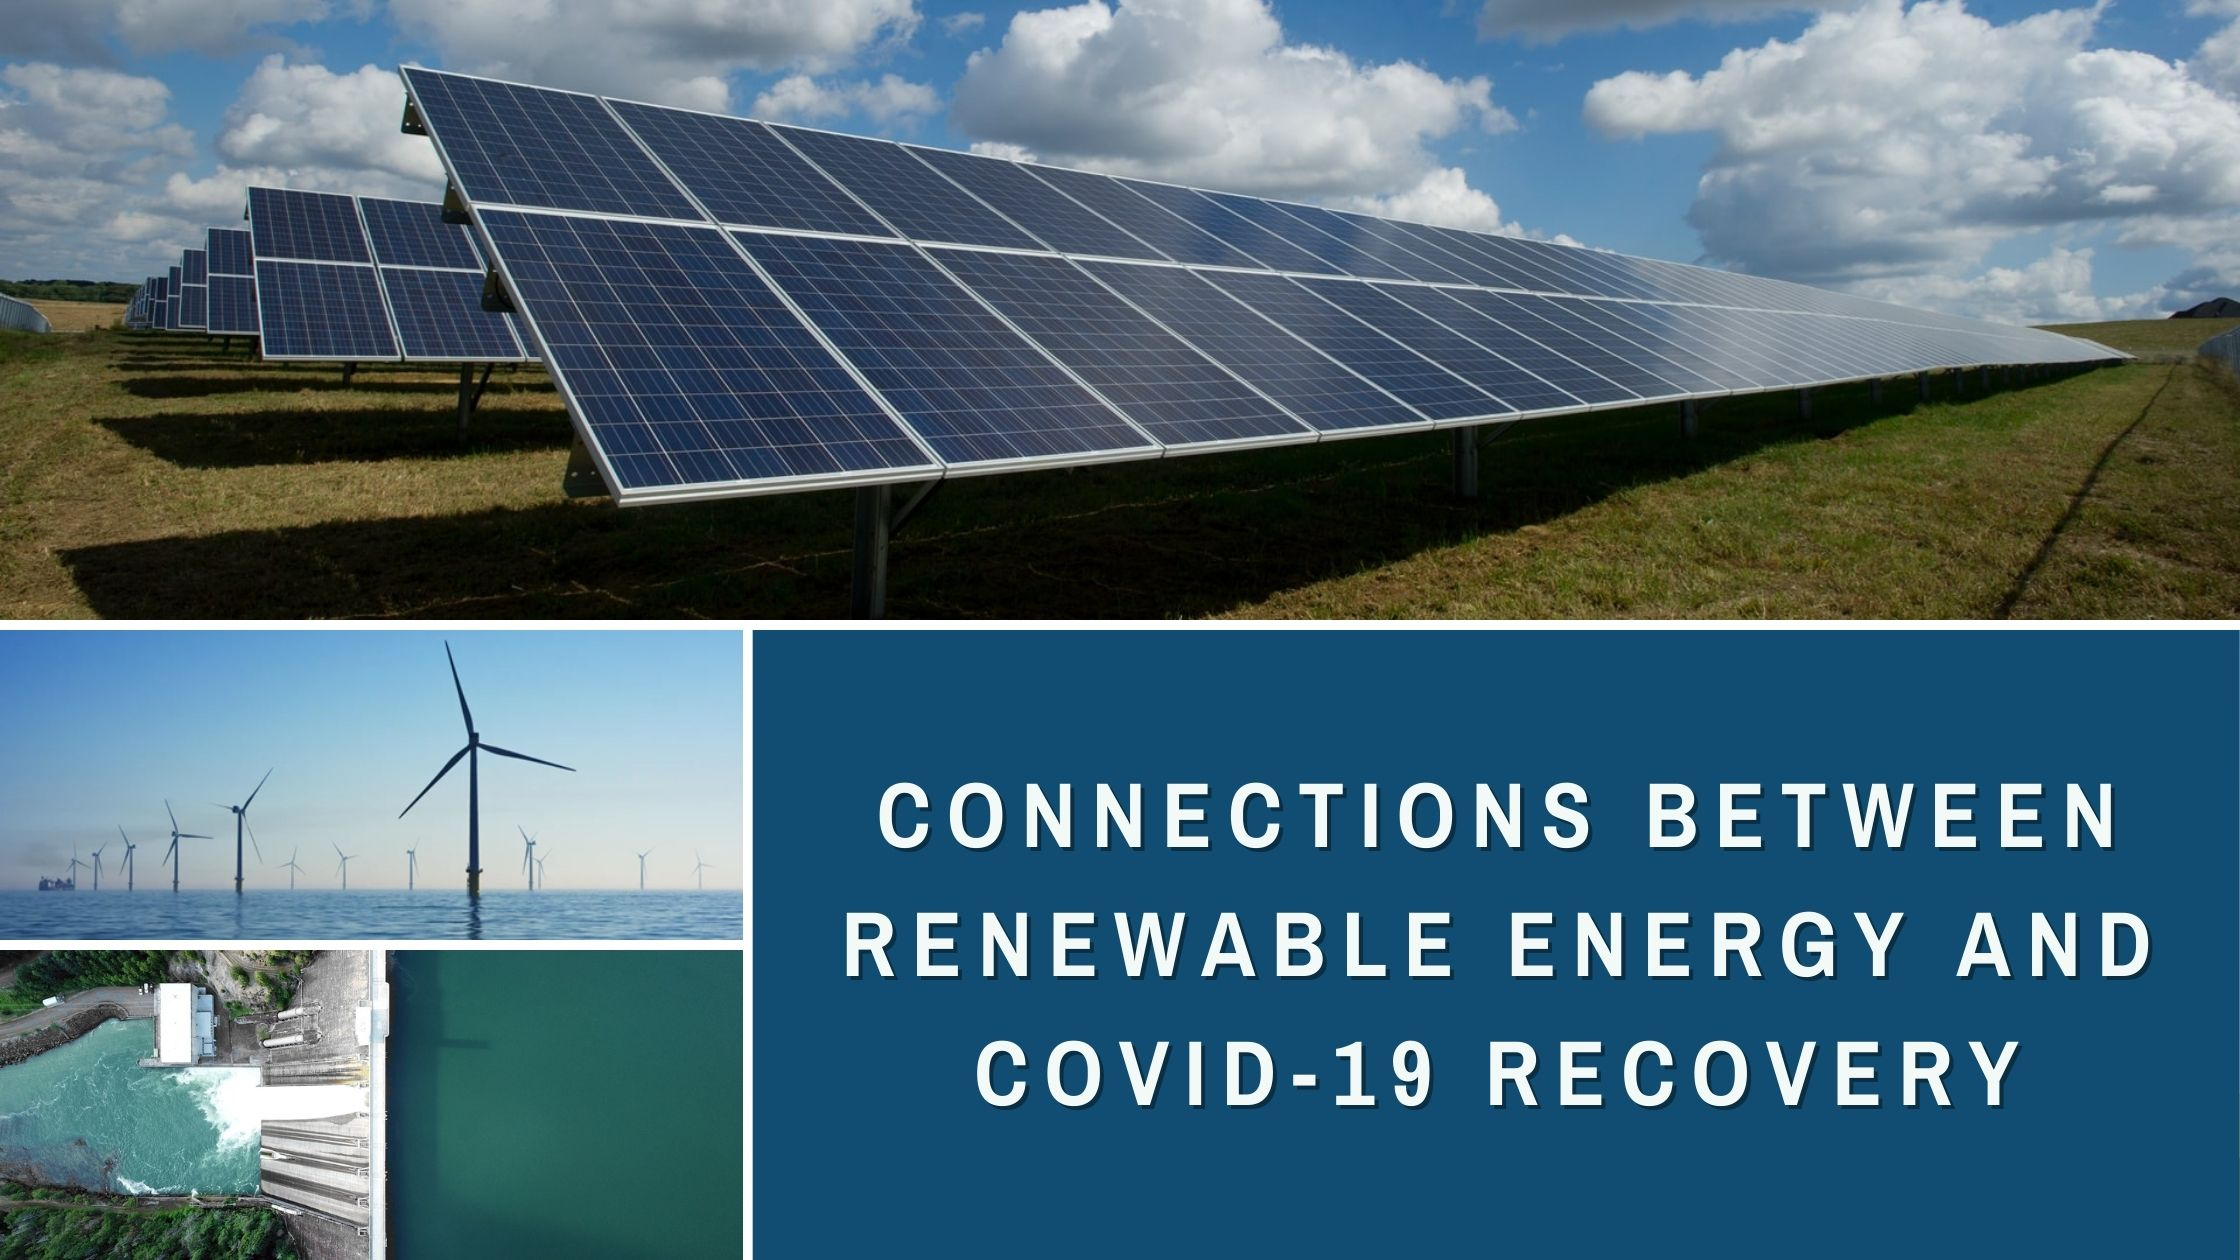 Connections Between Renewable Energy and COVID-19 Recovery